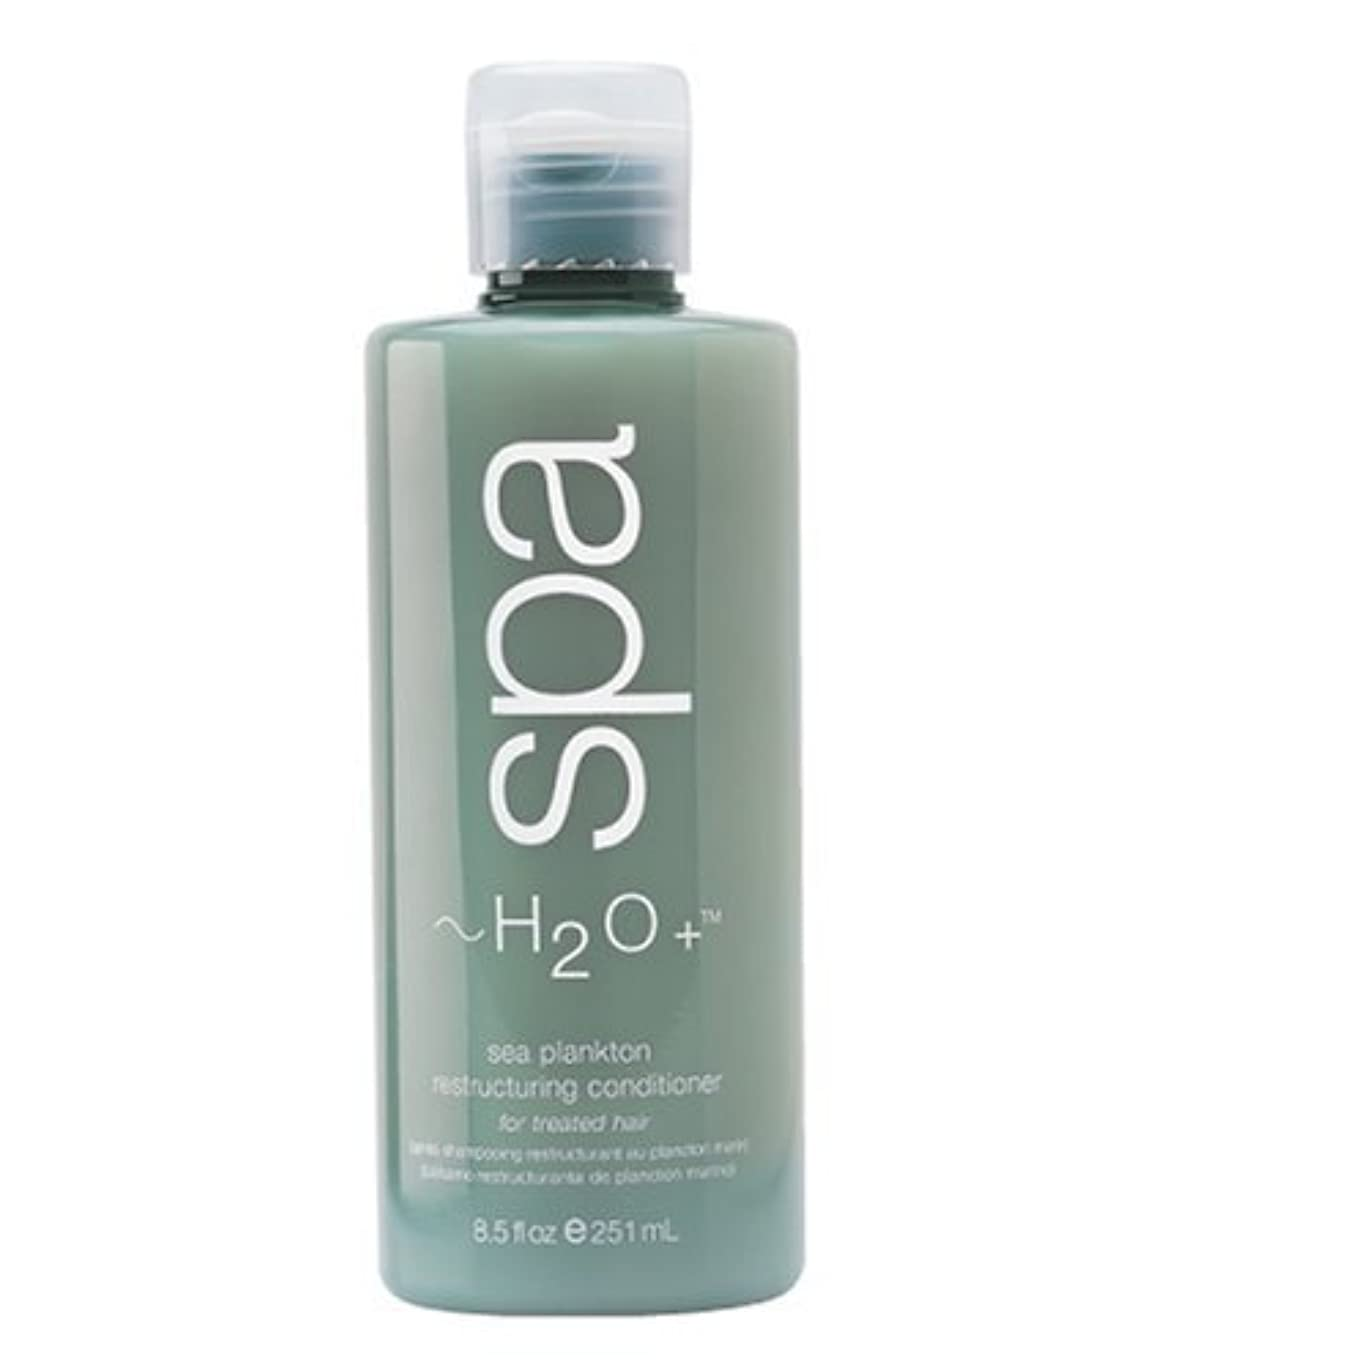 H2O + Sea Plankton Restructuring Conditioner For Treated Hair 8.5 Fl.Oz. by H2O Plus by H2O Plus